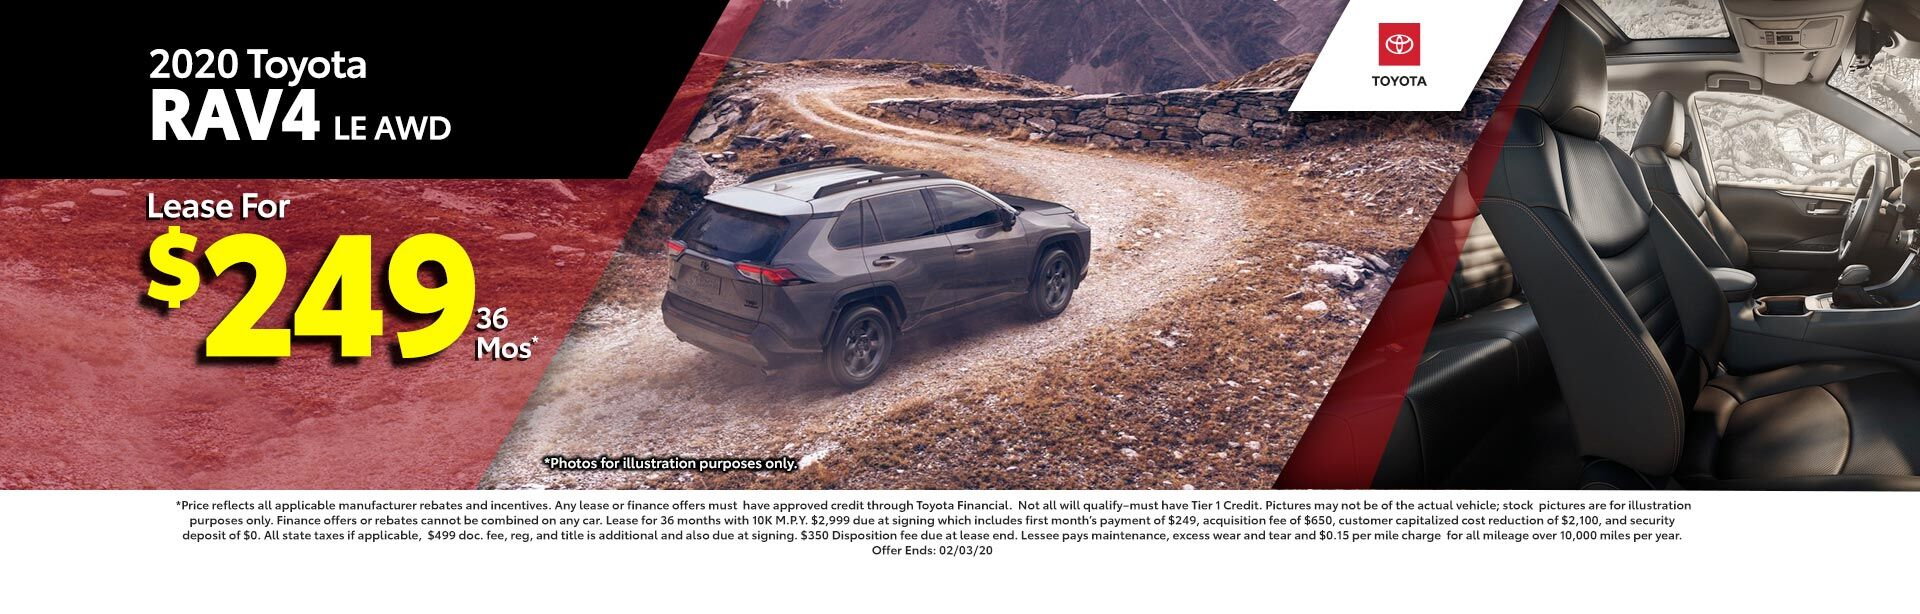 2019 Toyota RAV4 LE AWD at McGee Toyota of Epping